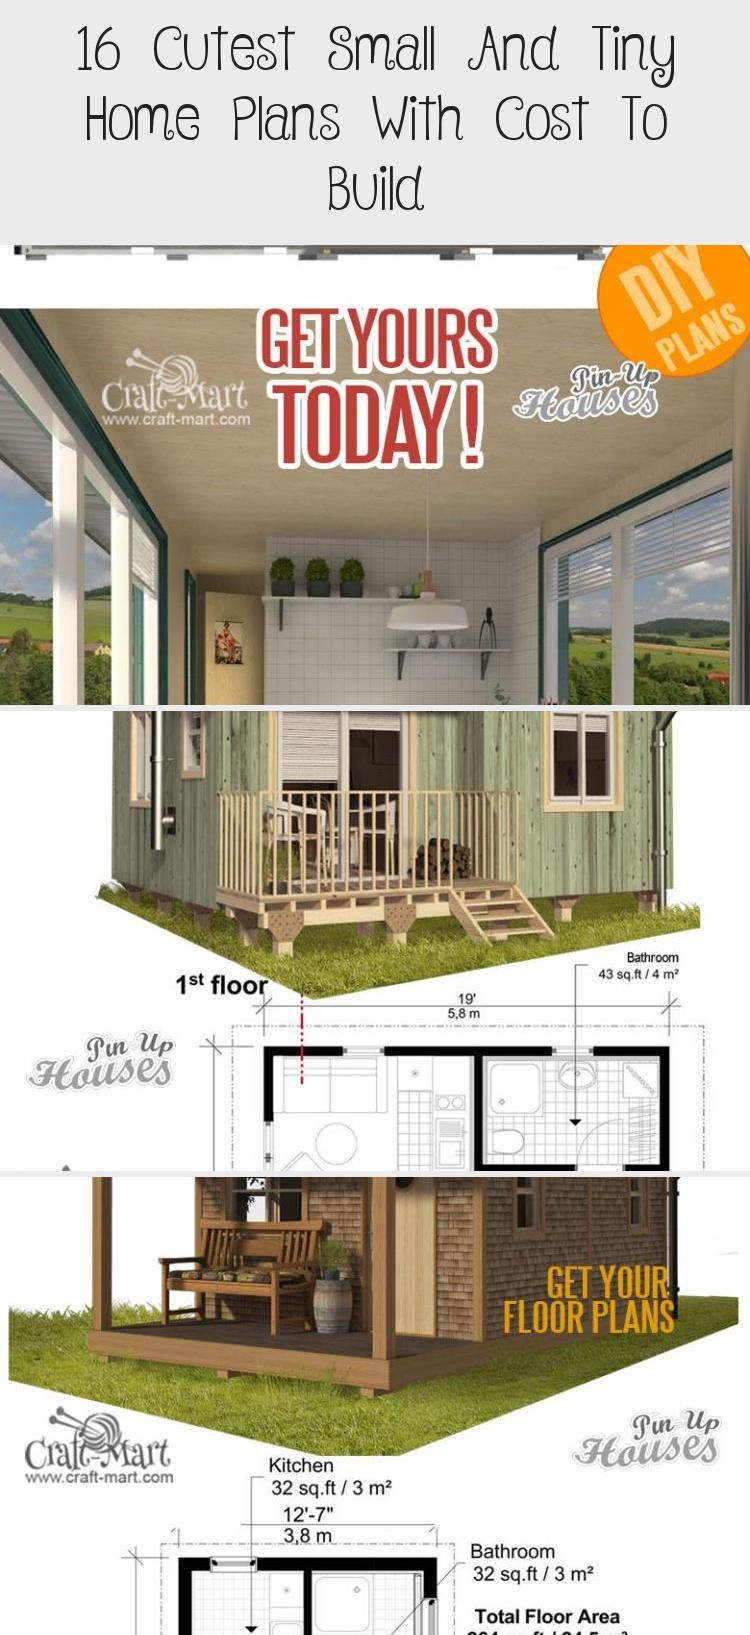 16 Cutest Small And Tiny Home Plans With Cost To Build Tiny House Plans House Plans Tiny Houses Canada